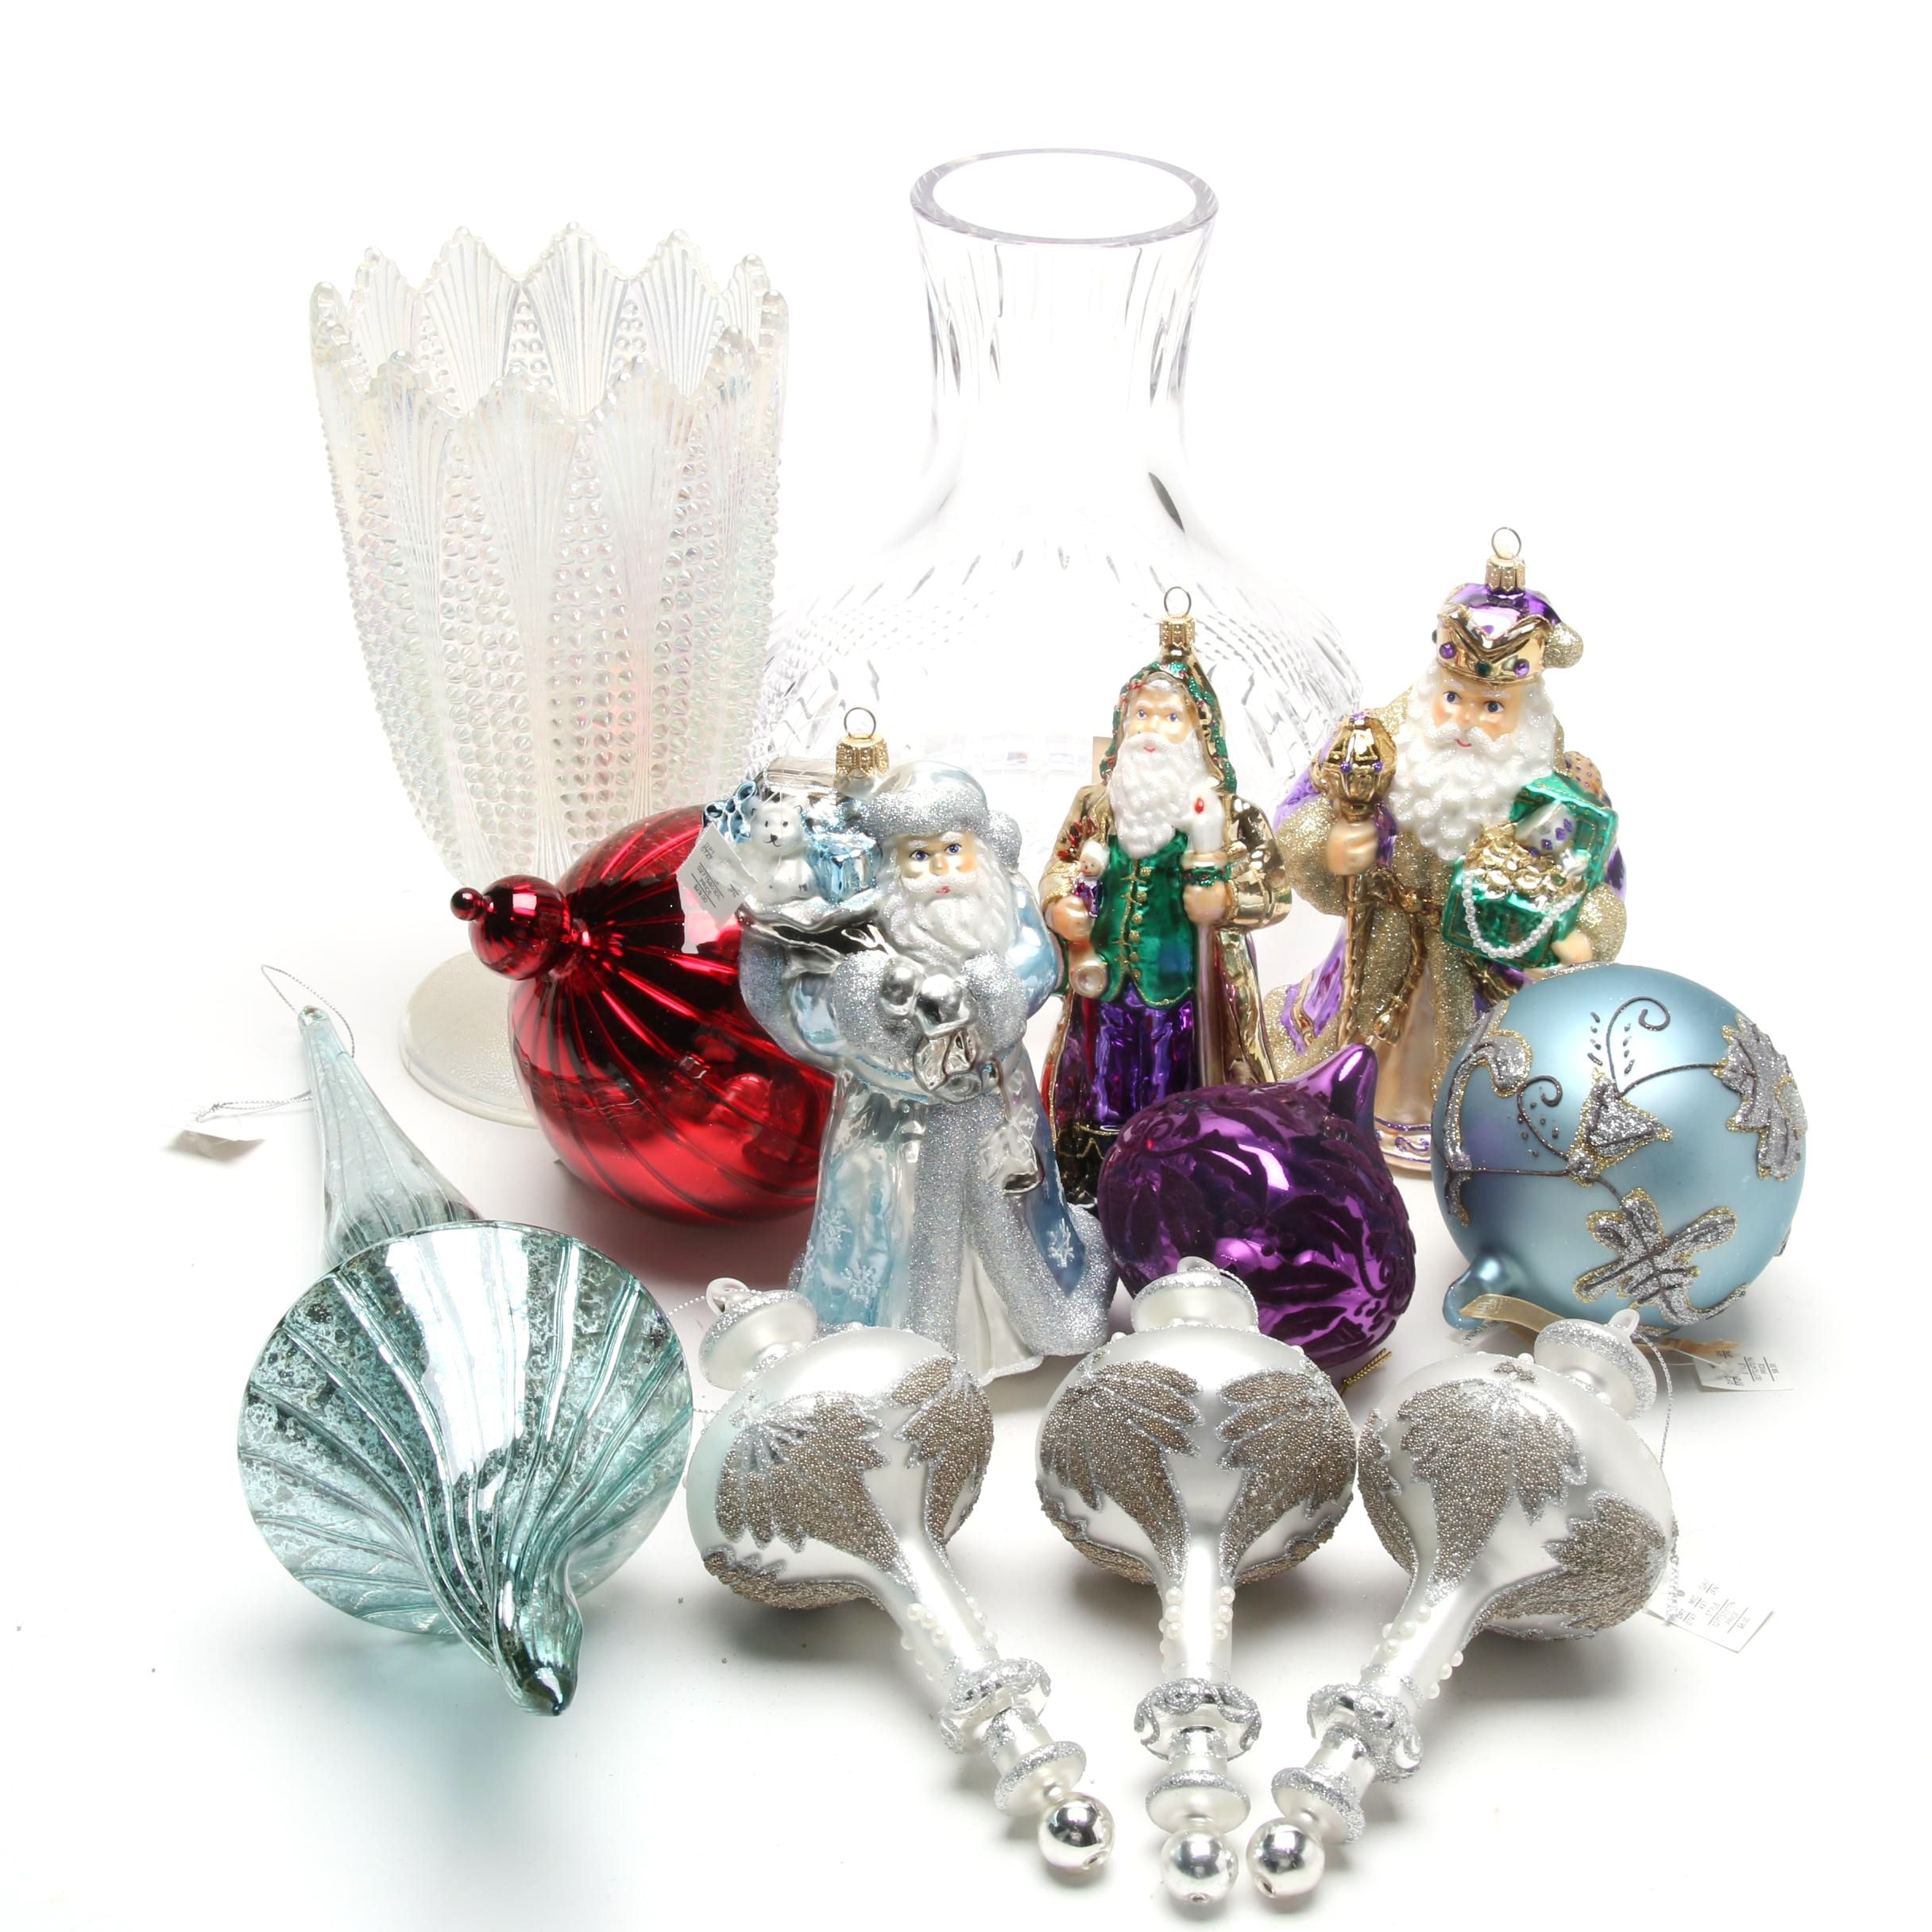 Blown Glass Christmas Ornaments, Crystal Lamp Shade and Iridescent Vase